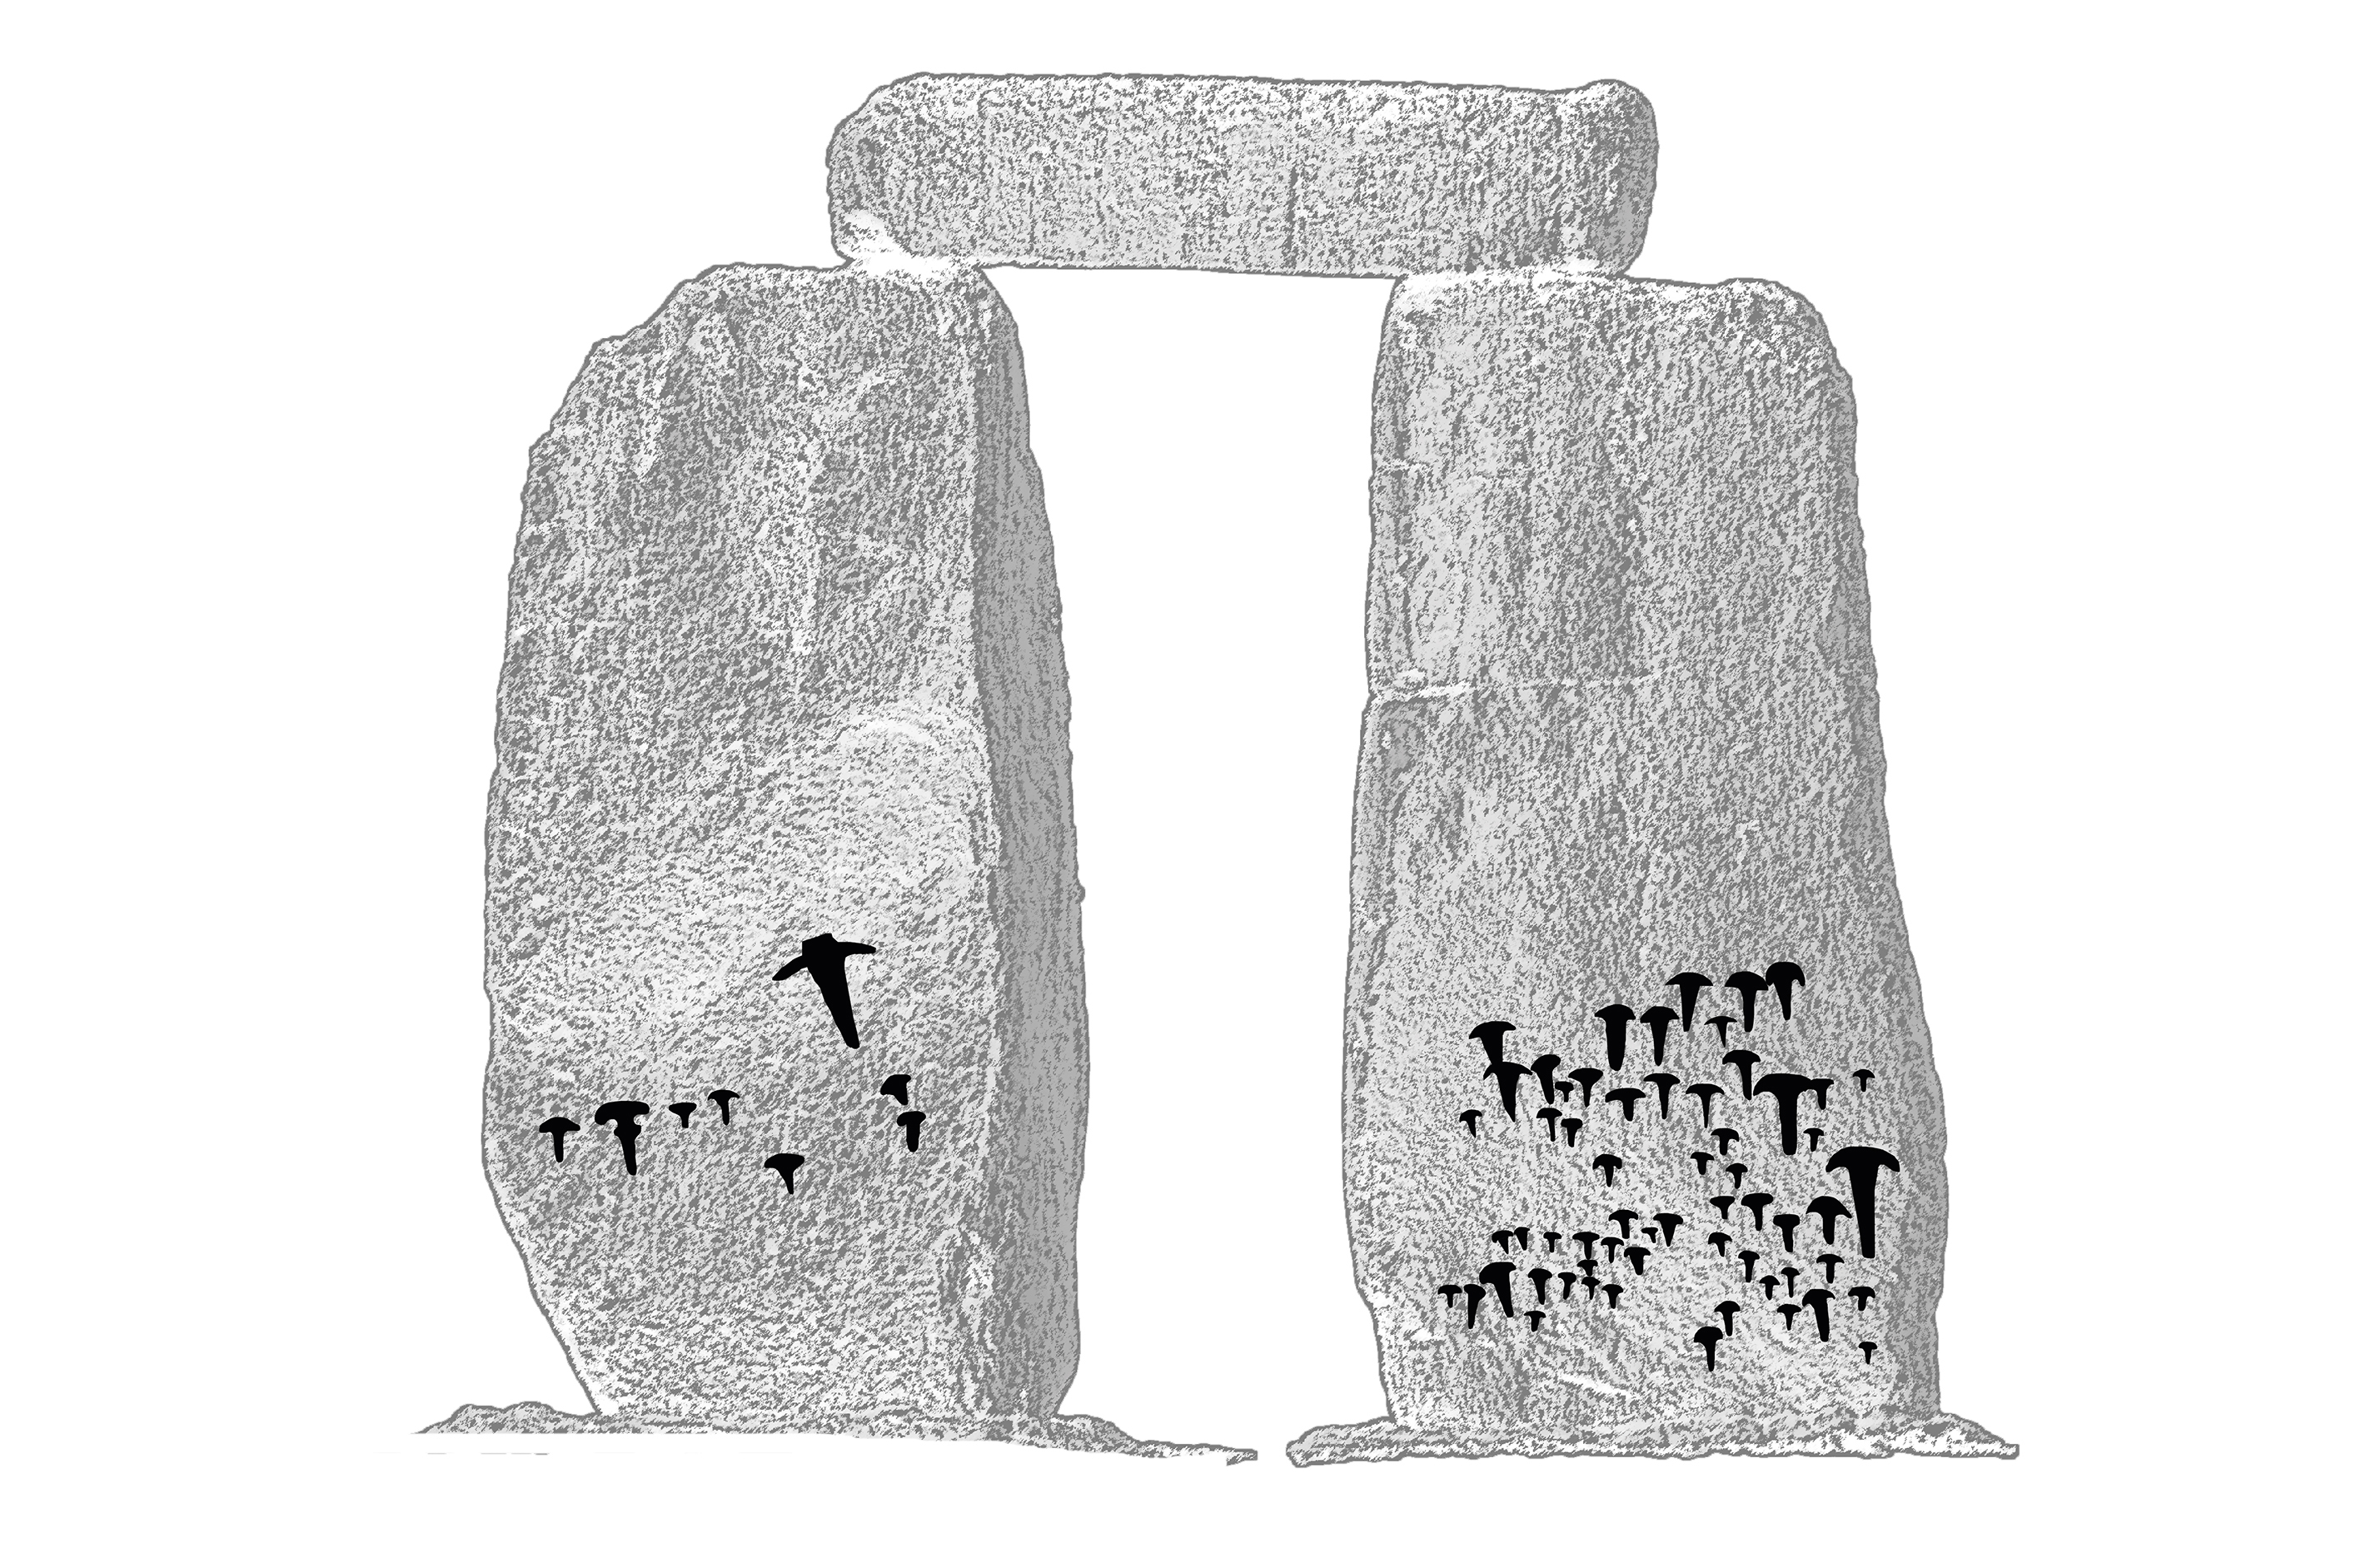 Detailed lidar scan and analysis of stonehenge reveals